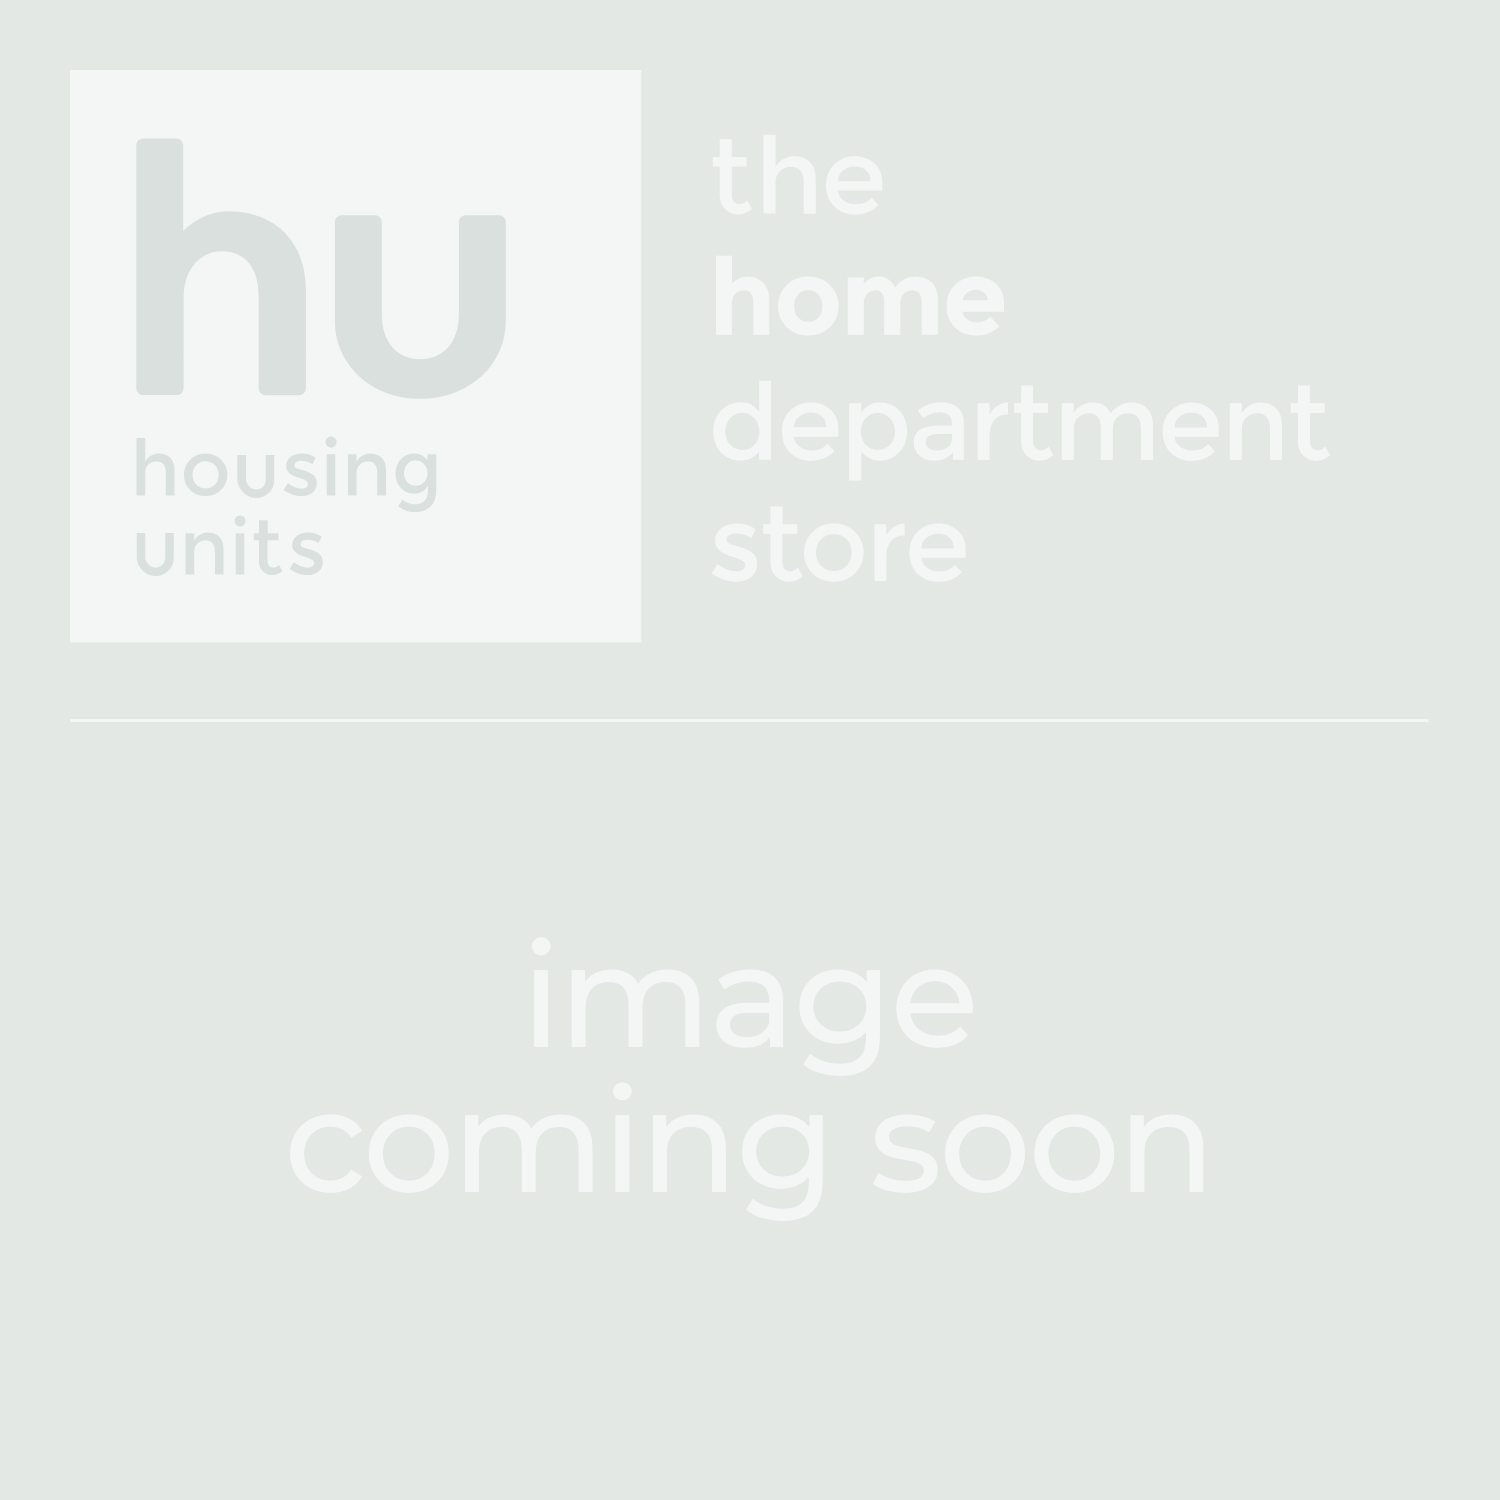 Windsor Berry Coloured Velvet Upholstered Round Footstool - Lifestyle | Housing Units